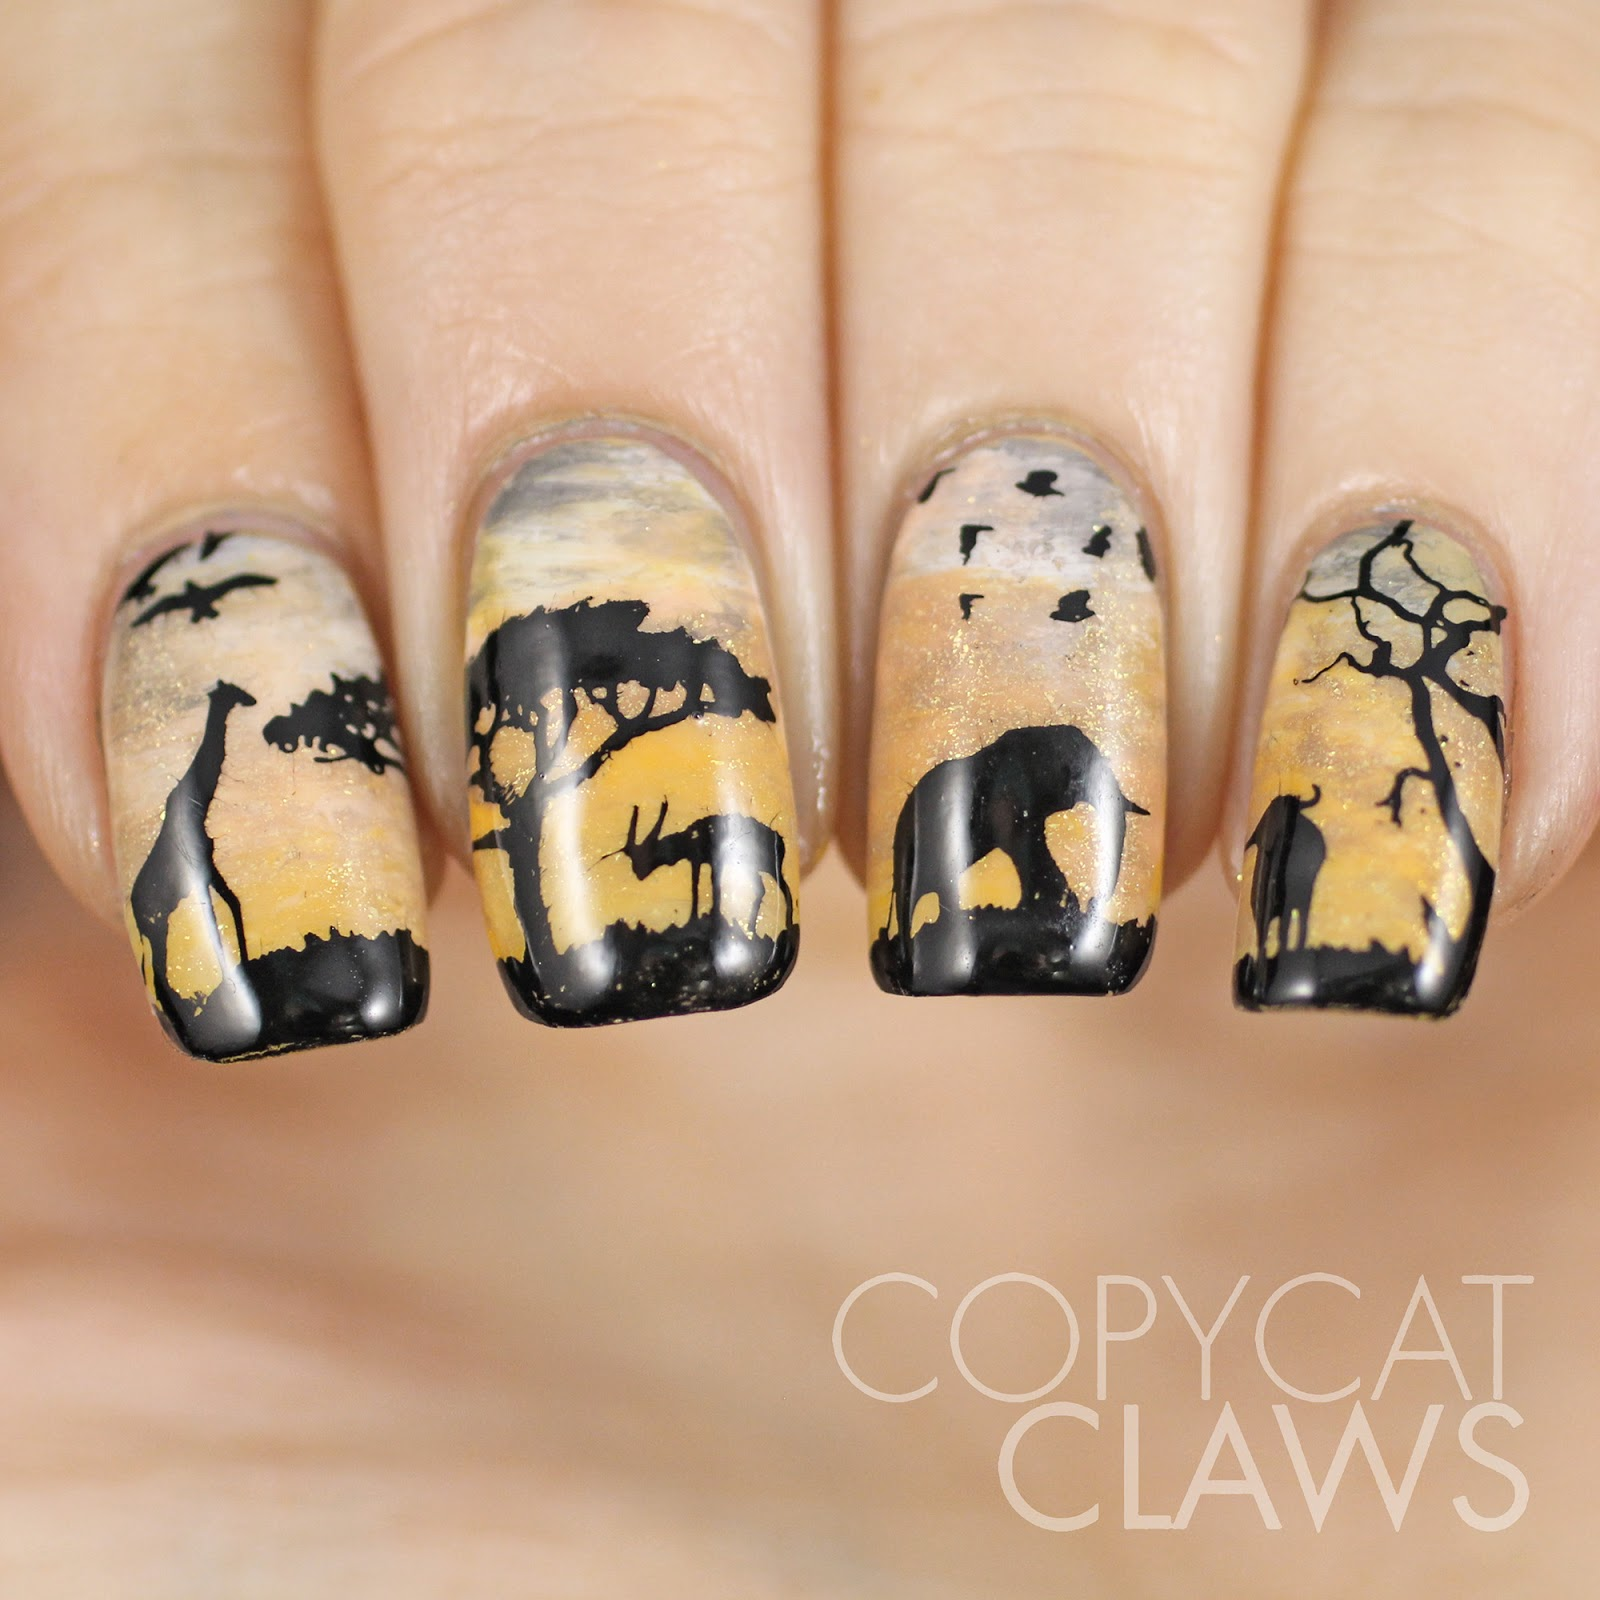 Copycat Claws: Sunday Stamping - Wildlife Nail Art